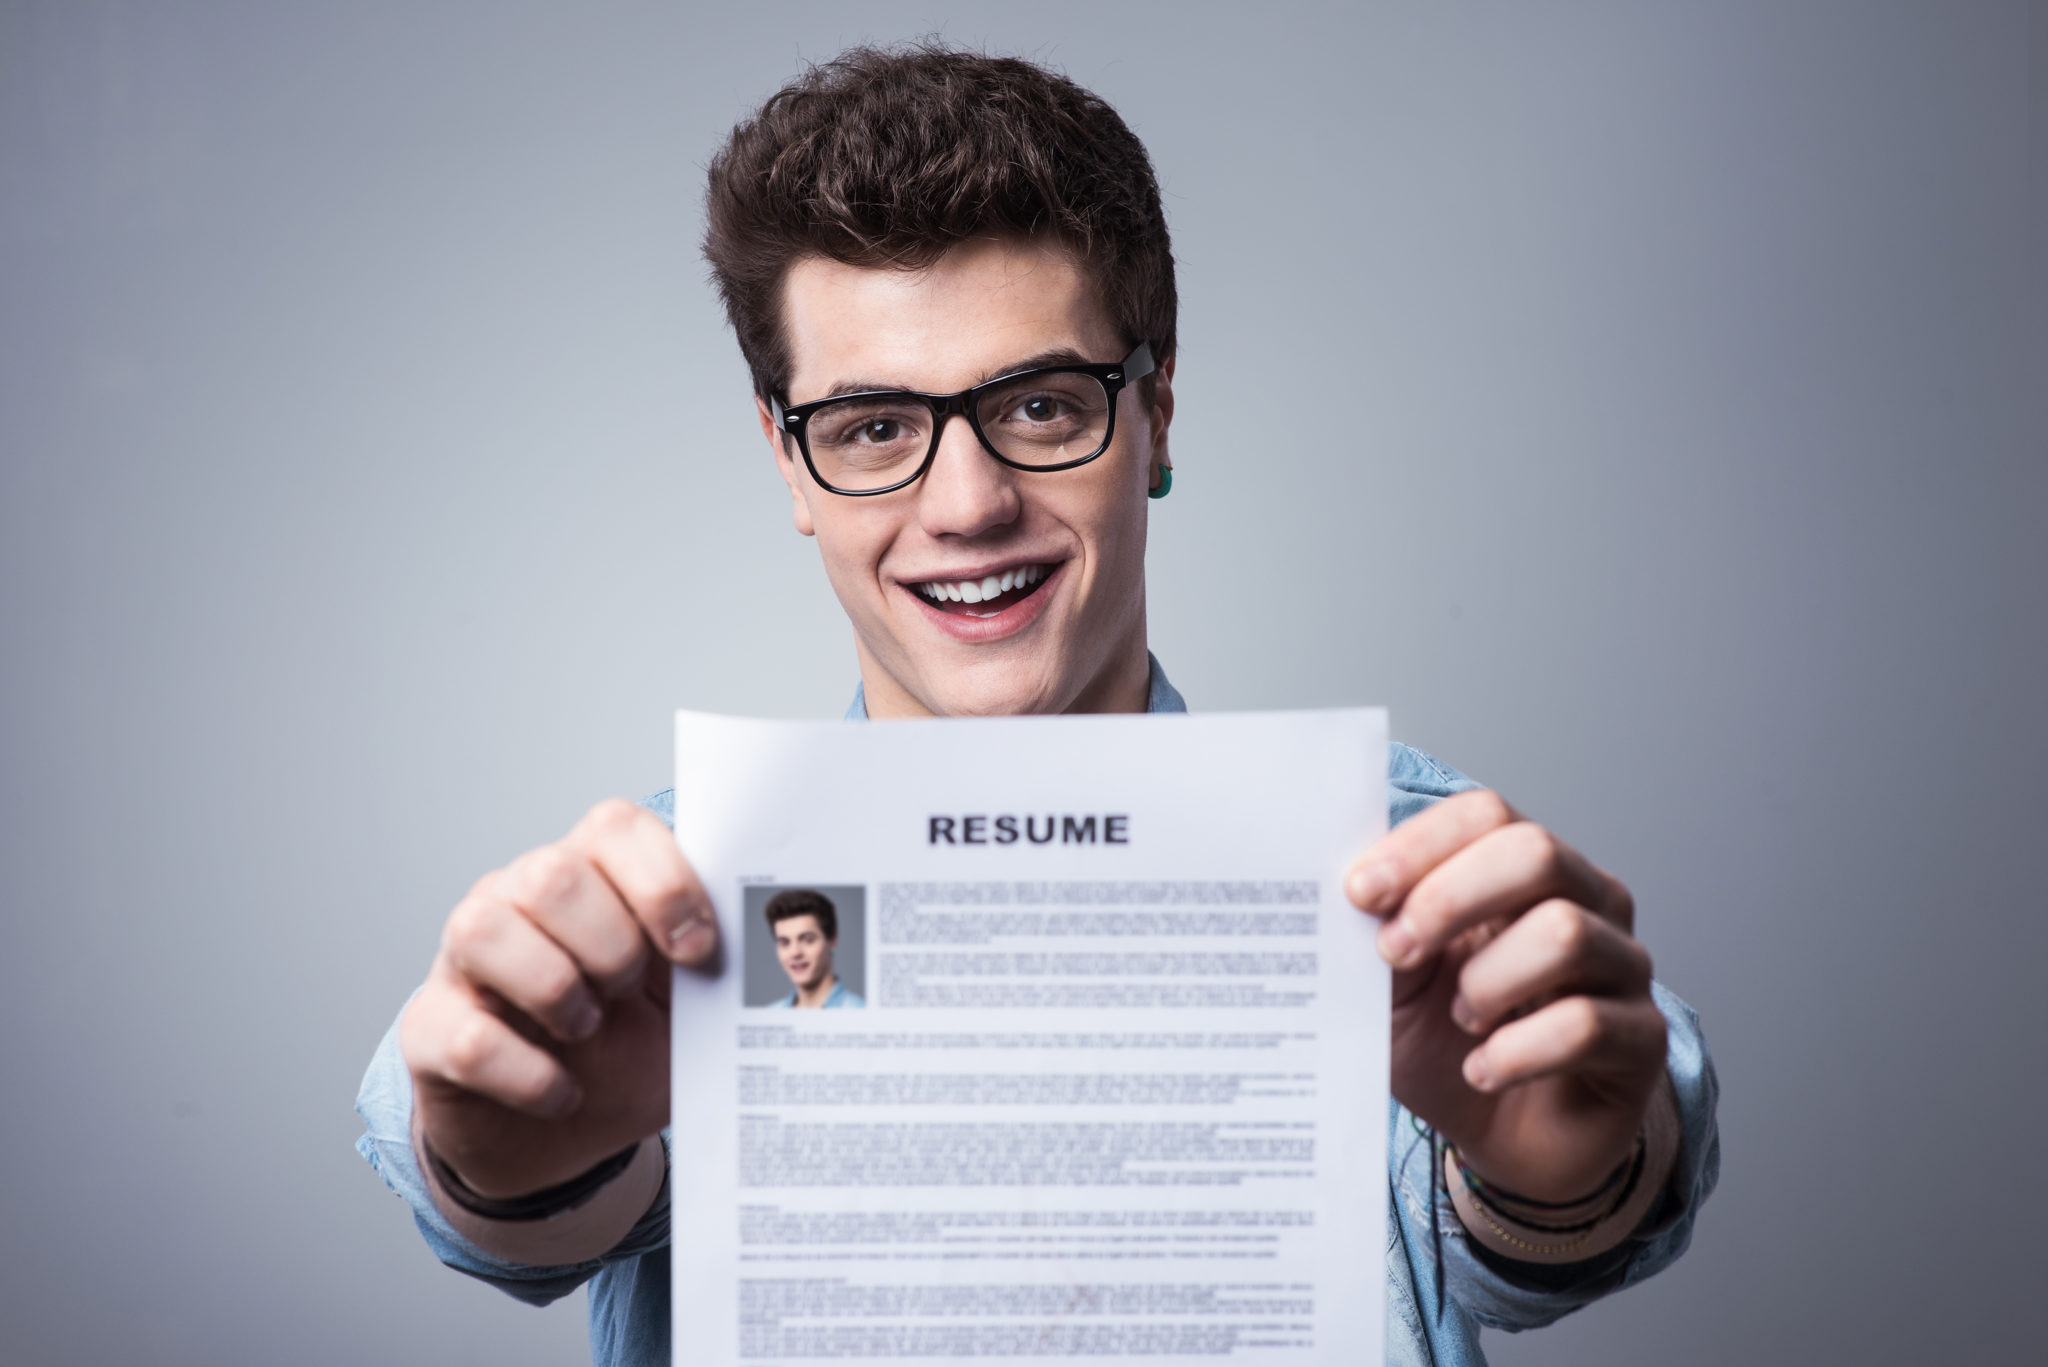 Writing A Resume Without College Degree? No Problem!